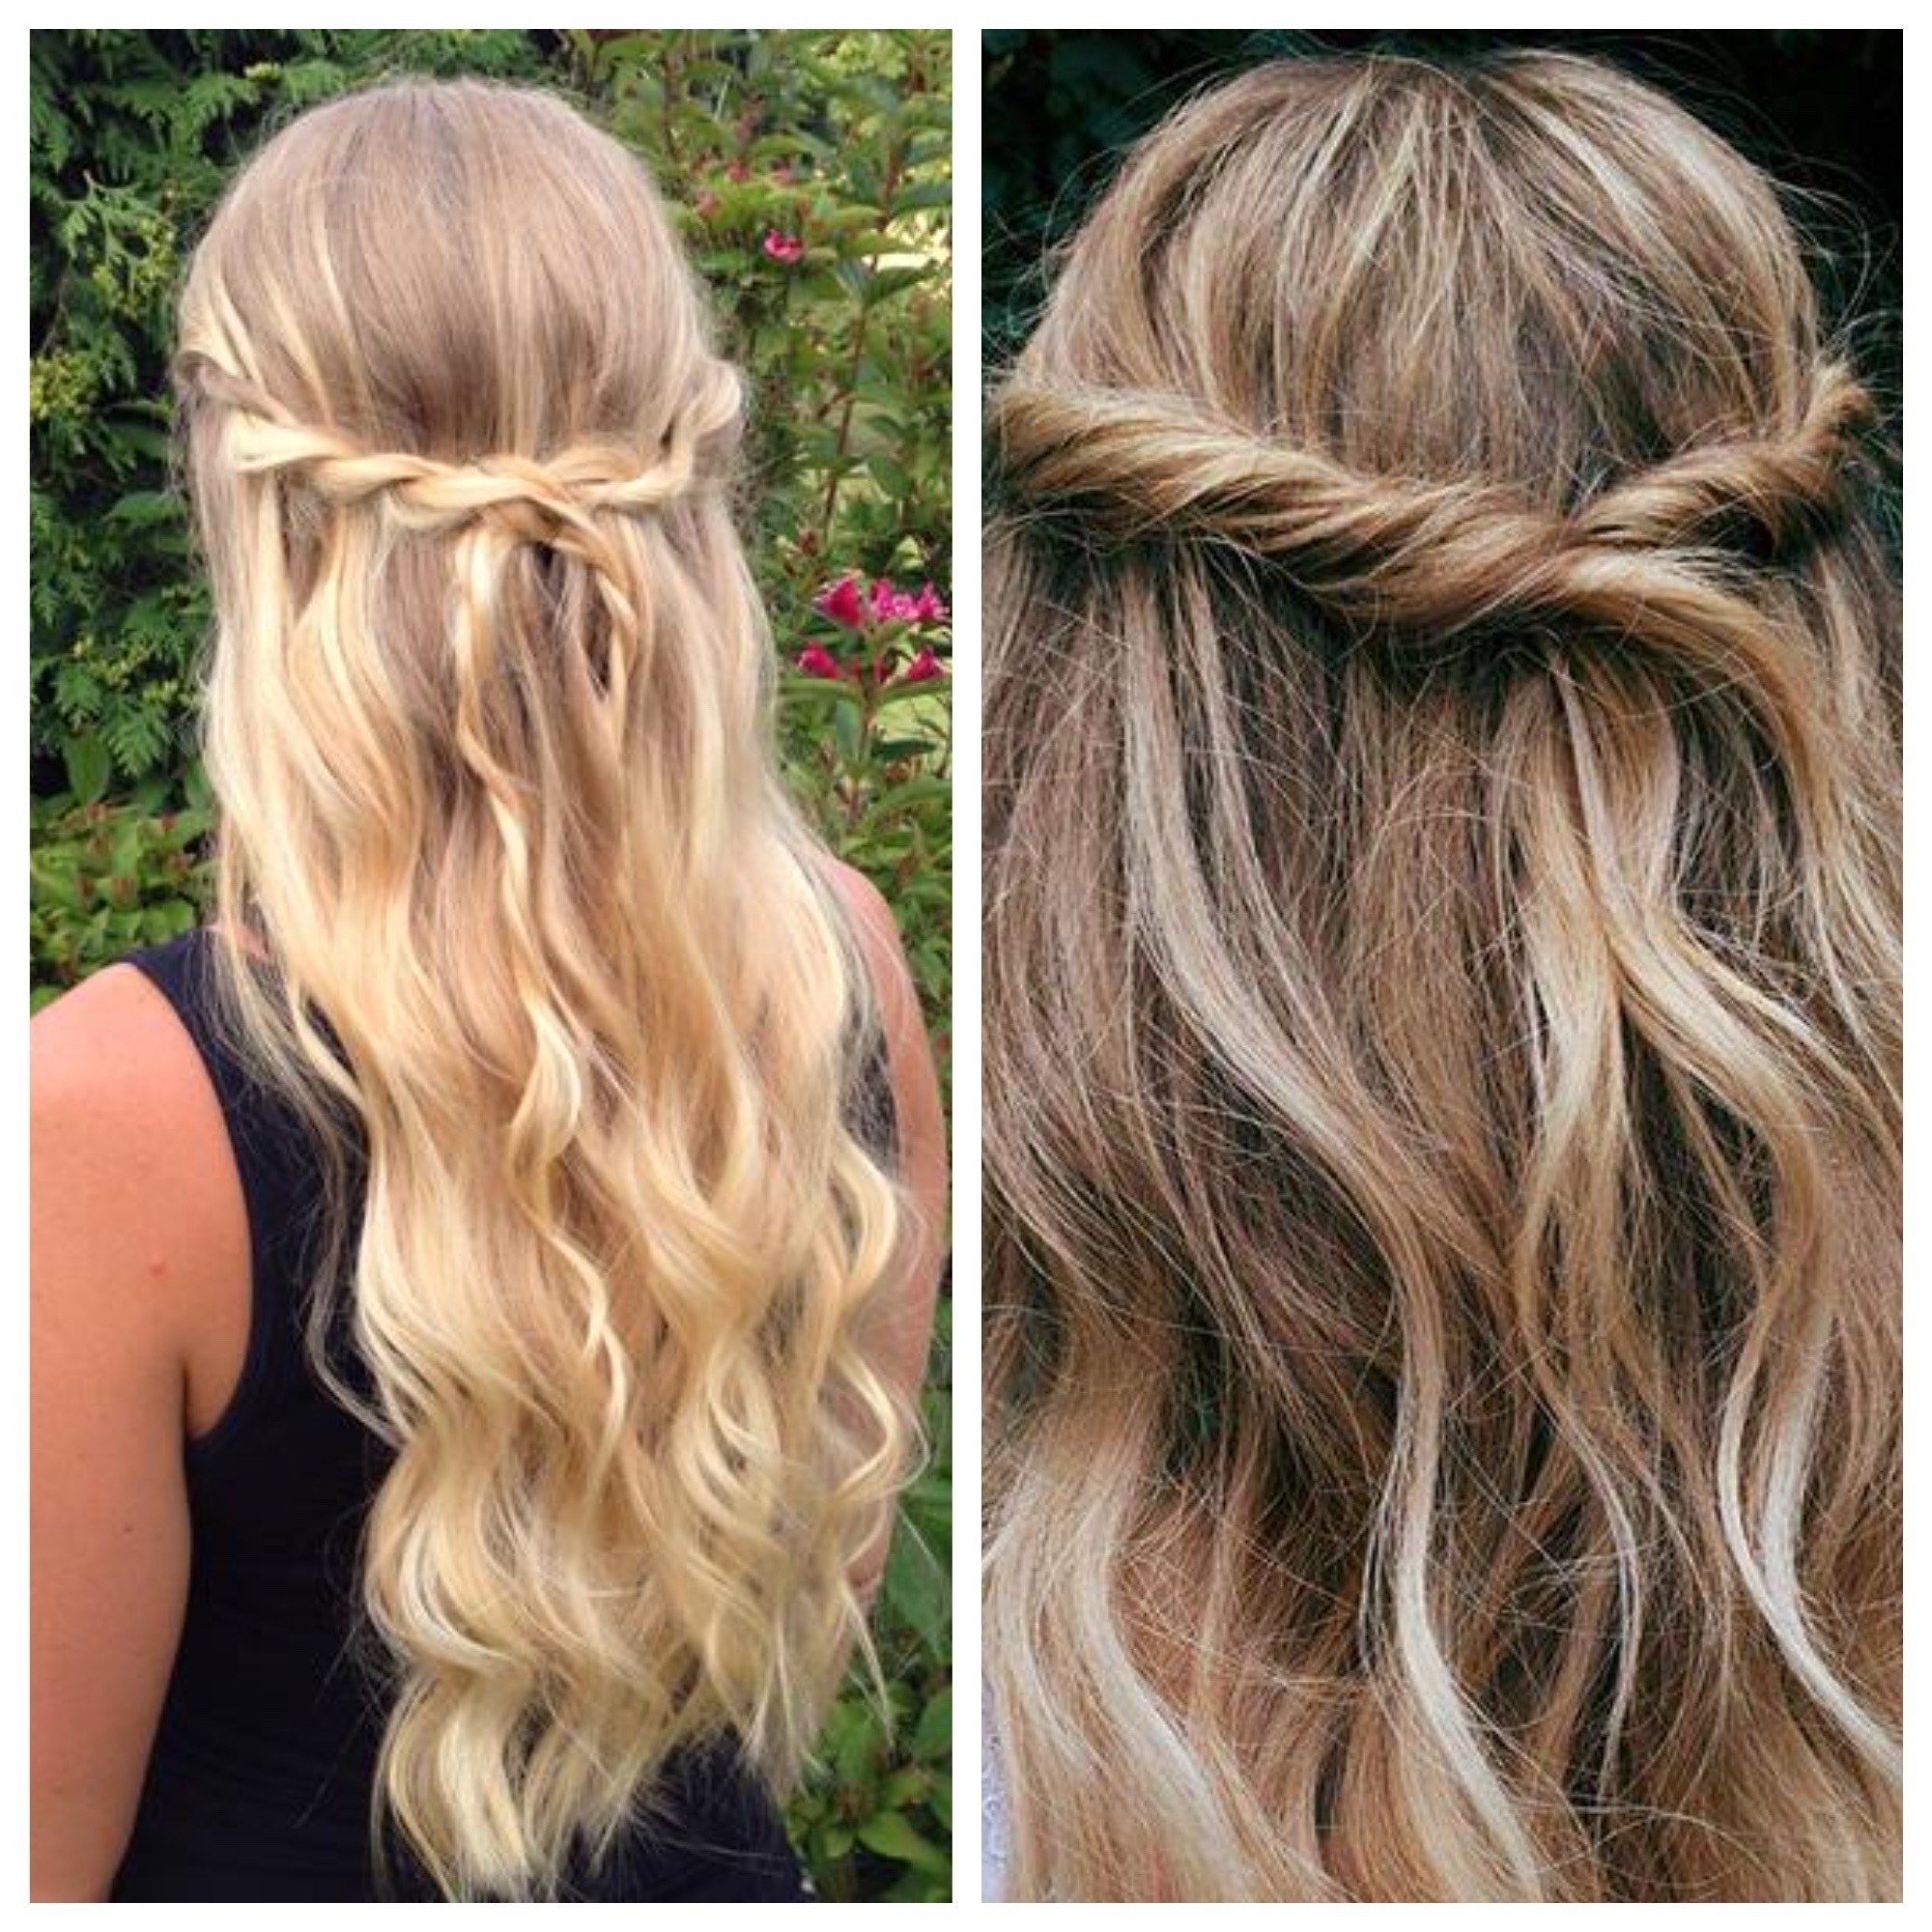 Simple And Easy Half Up Hairstyles For Weddings – Hair World Magazine In Preferred Braided Along The Way Hairstyles (View 18 of 20)